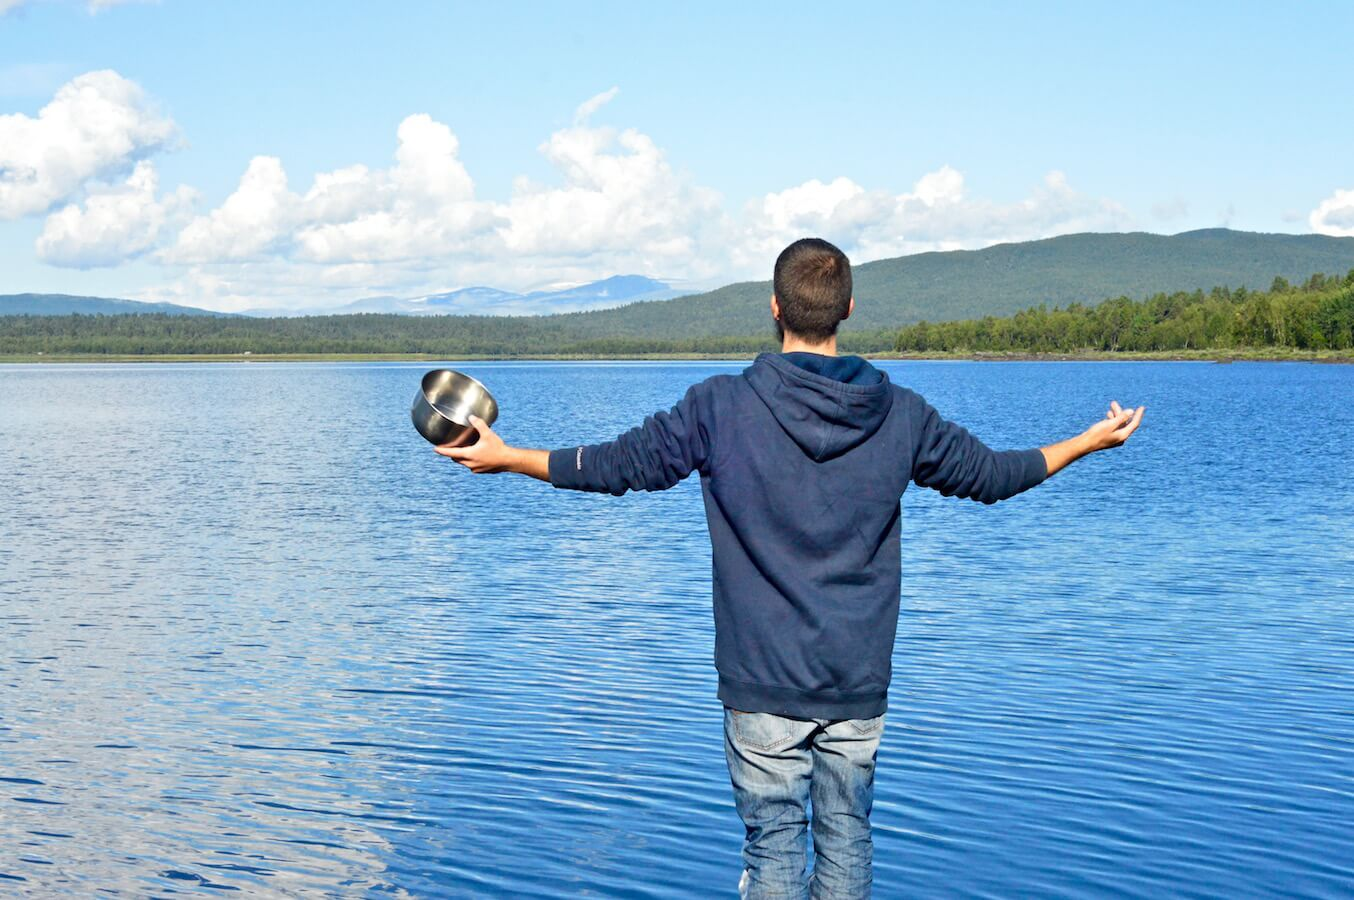 Peter spreading his arms in front of the blue lake in the morning in Lapland, Sweden